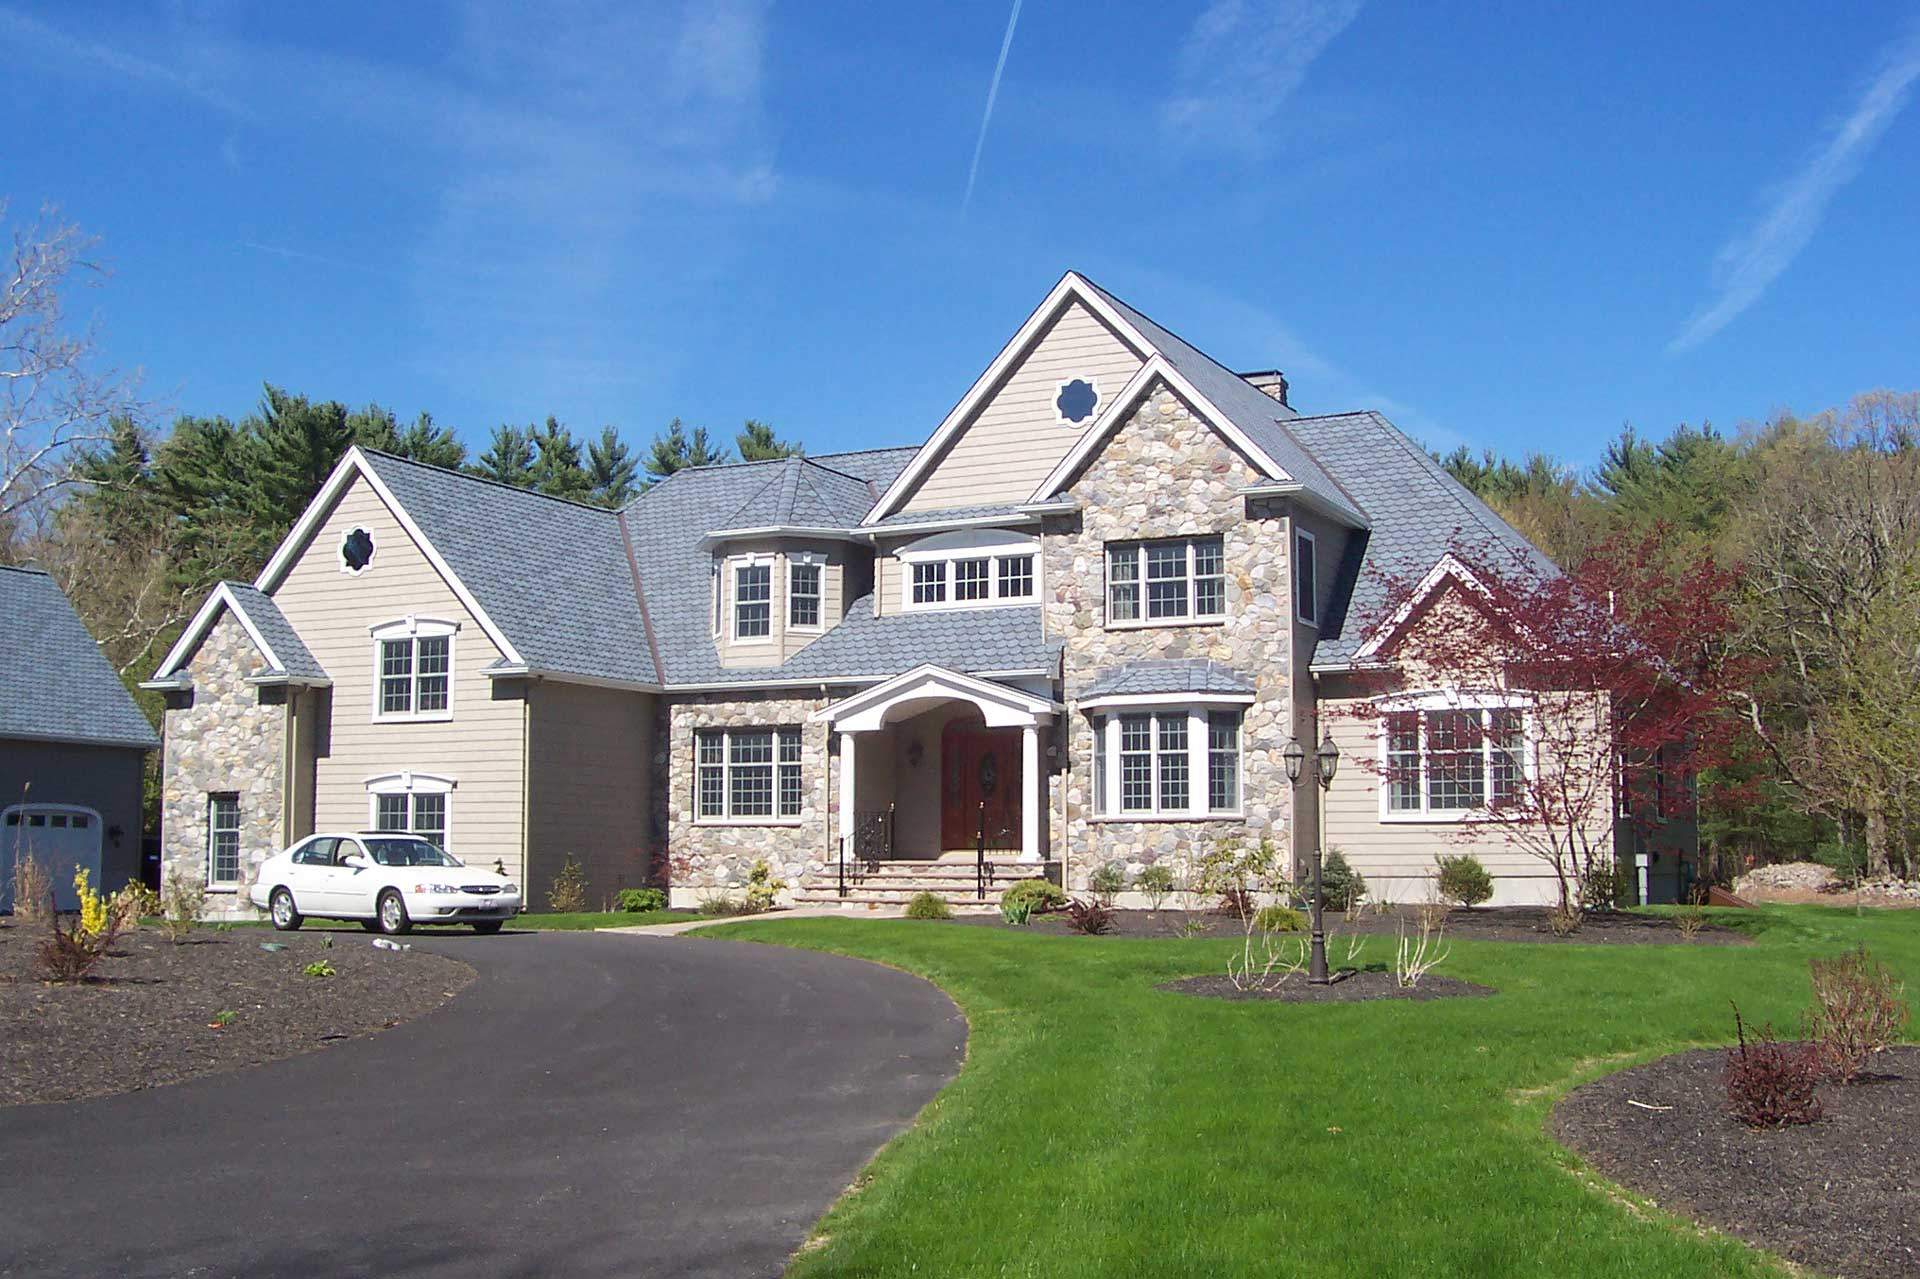 Custom homes cme architects inc for Custom home architects